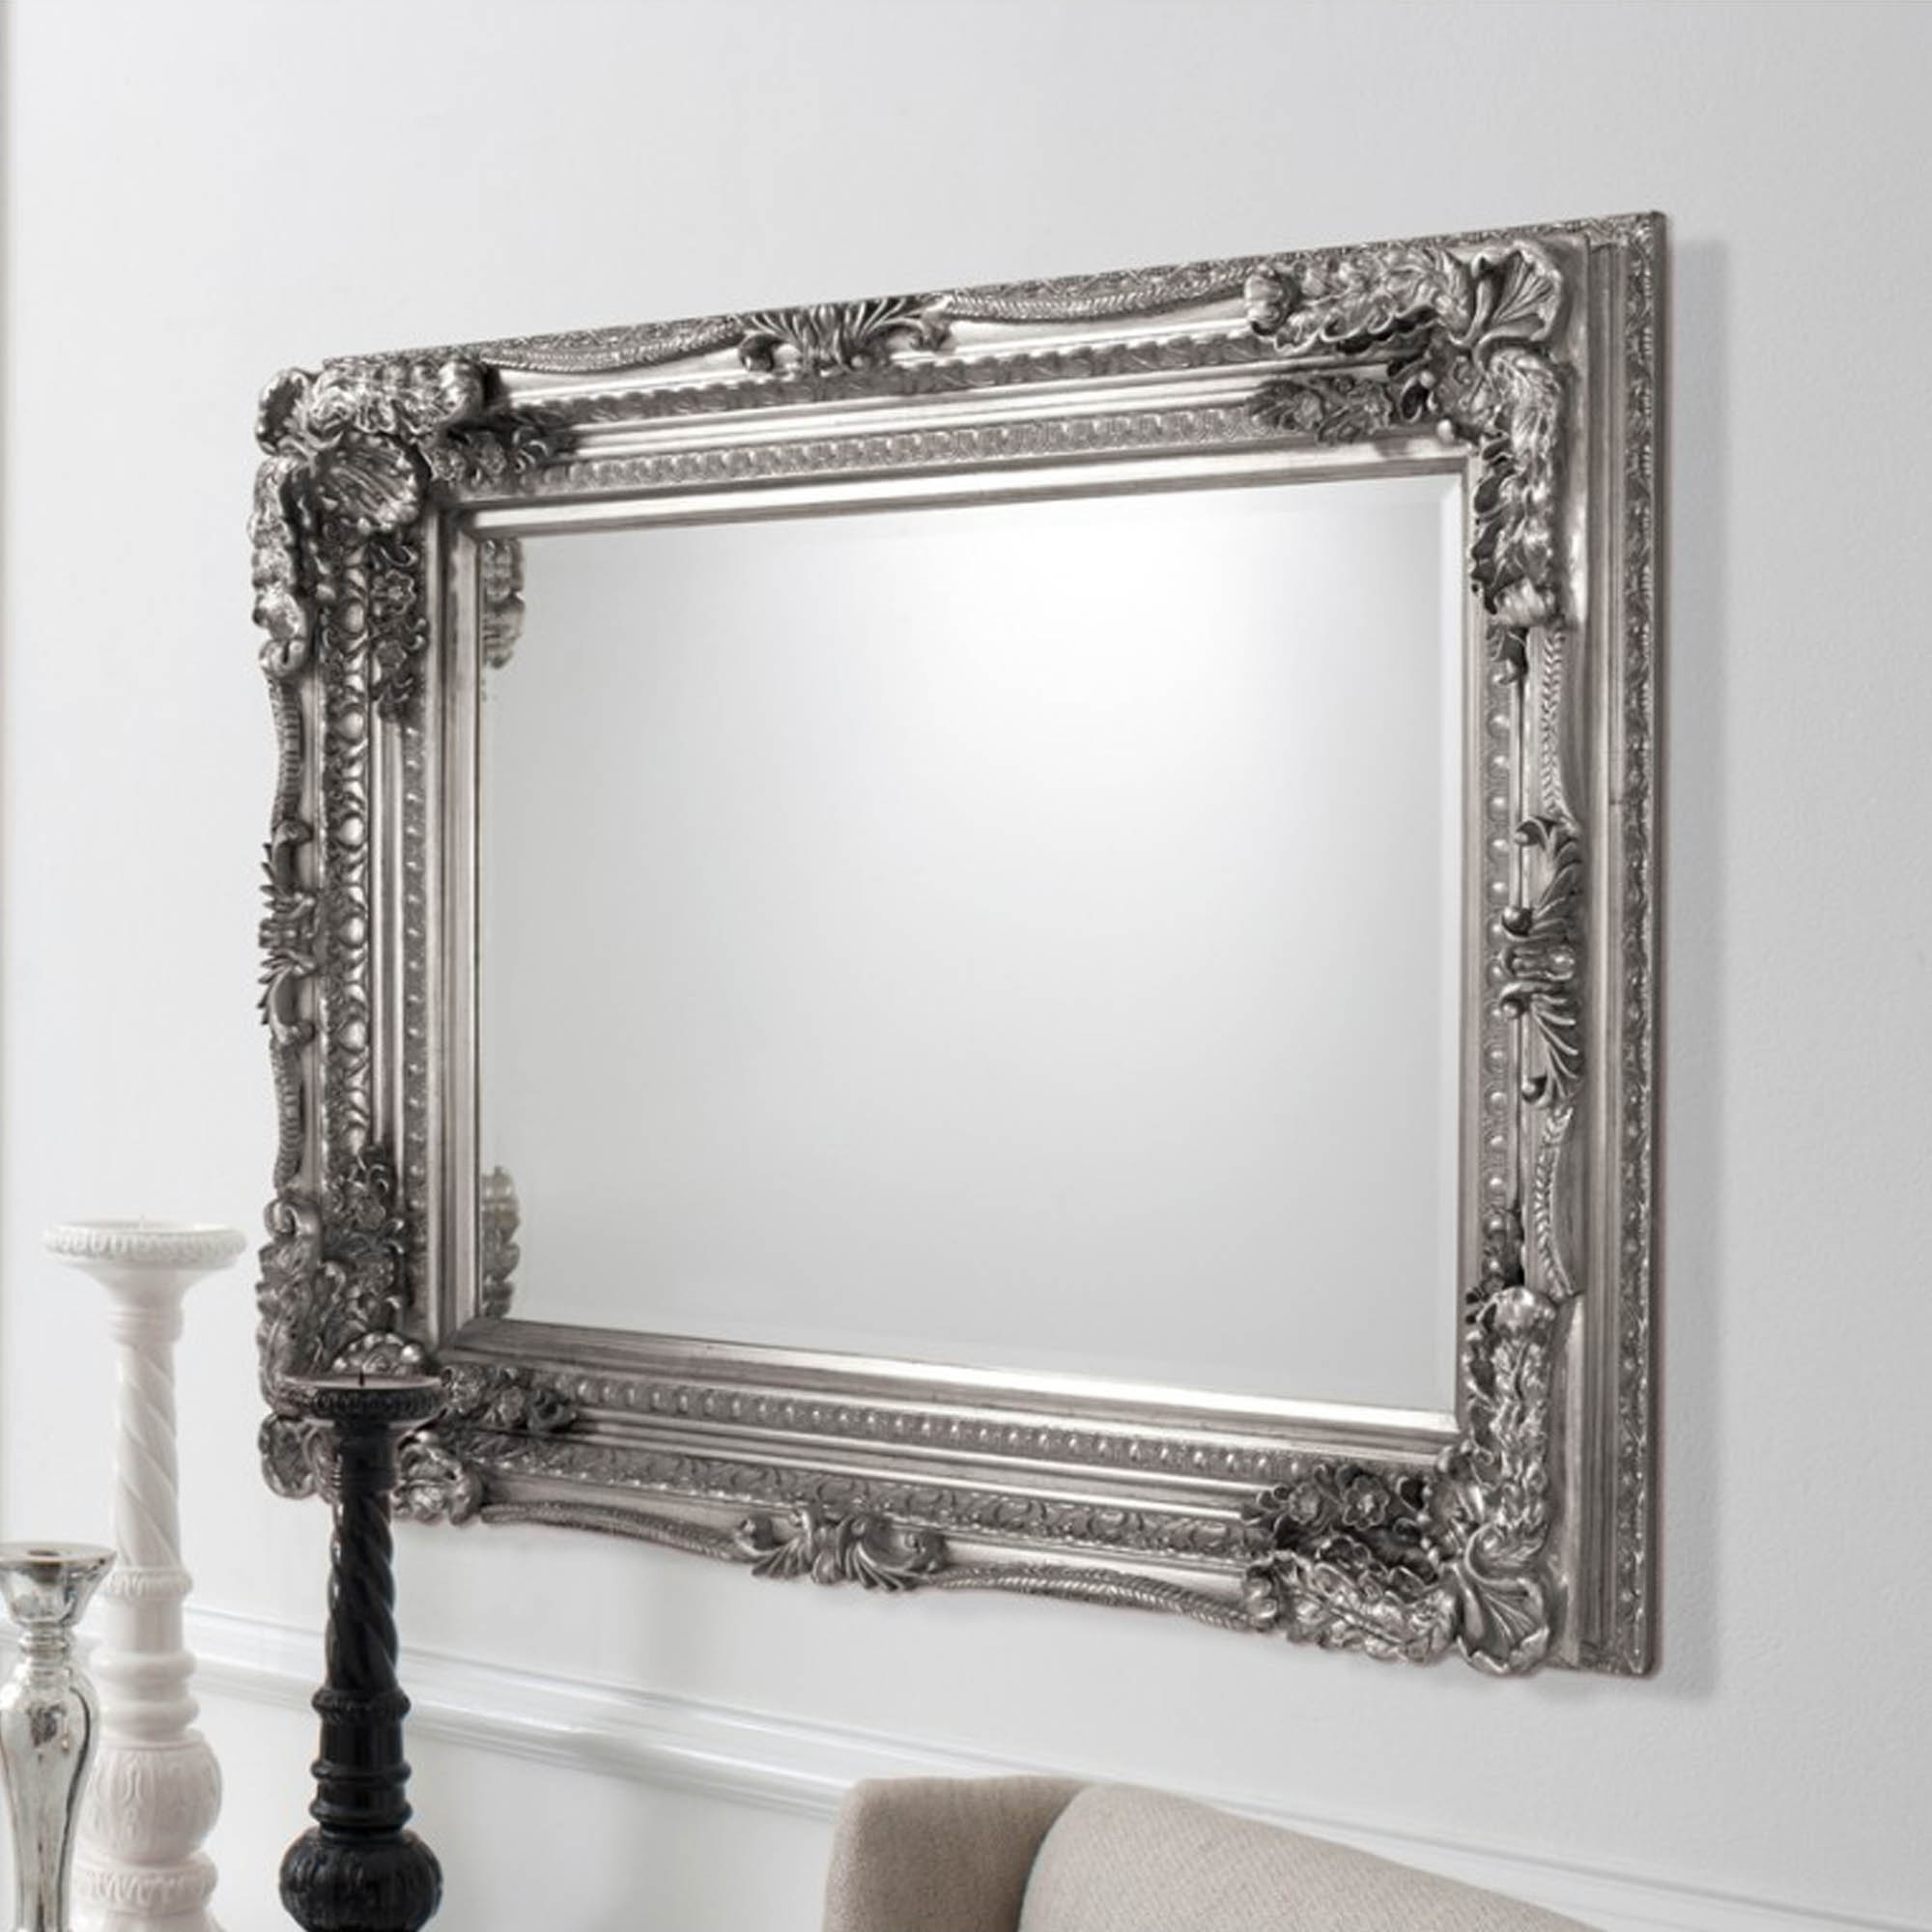 Carved louis silver antique french style mirror for Vintage style mirrors